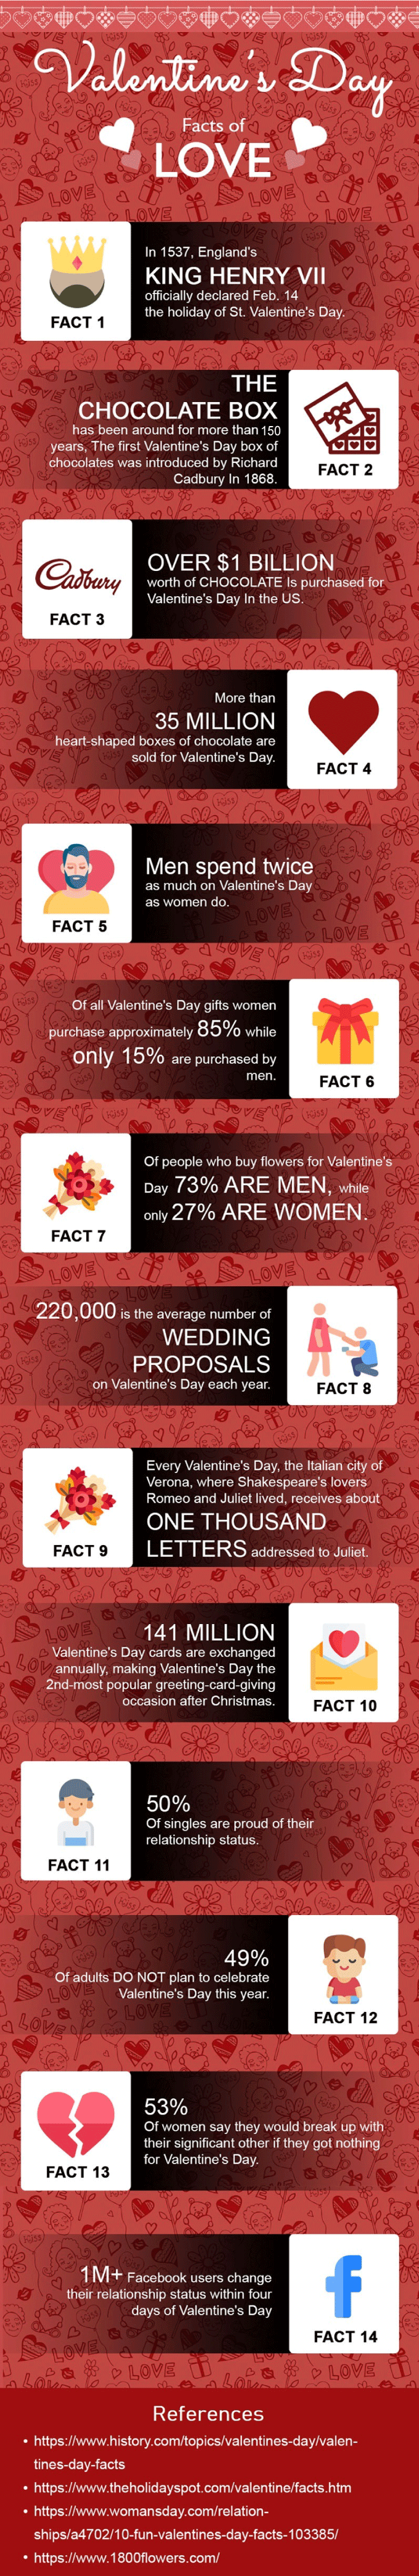 Valentine's Day Facts and trivia